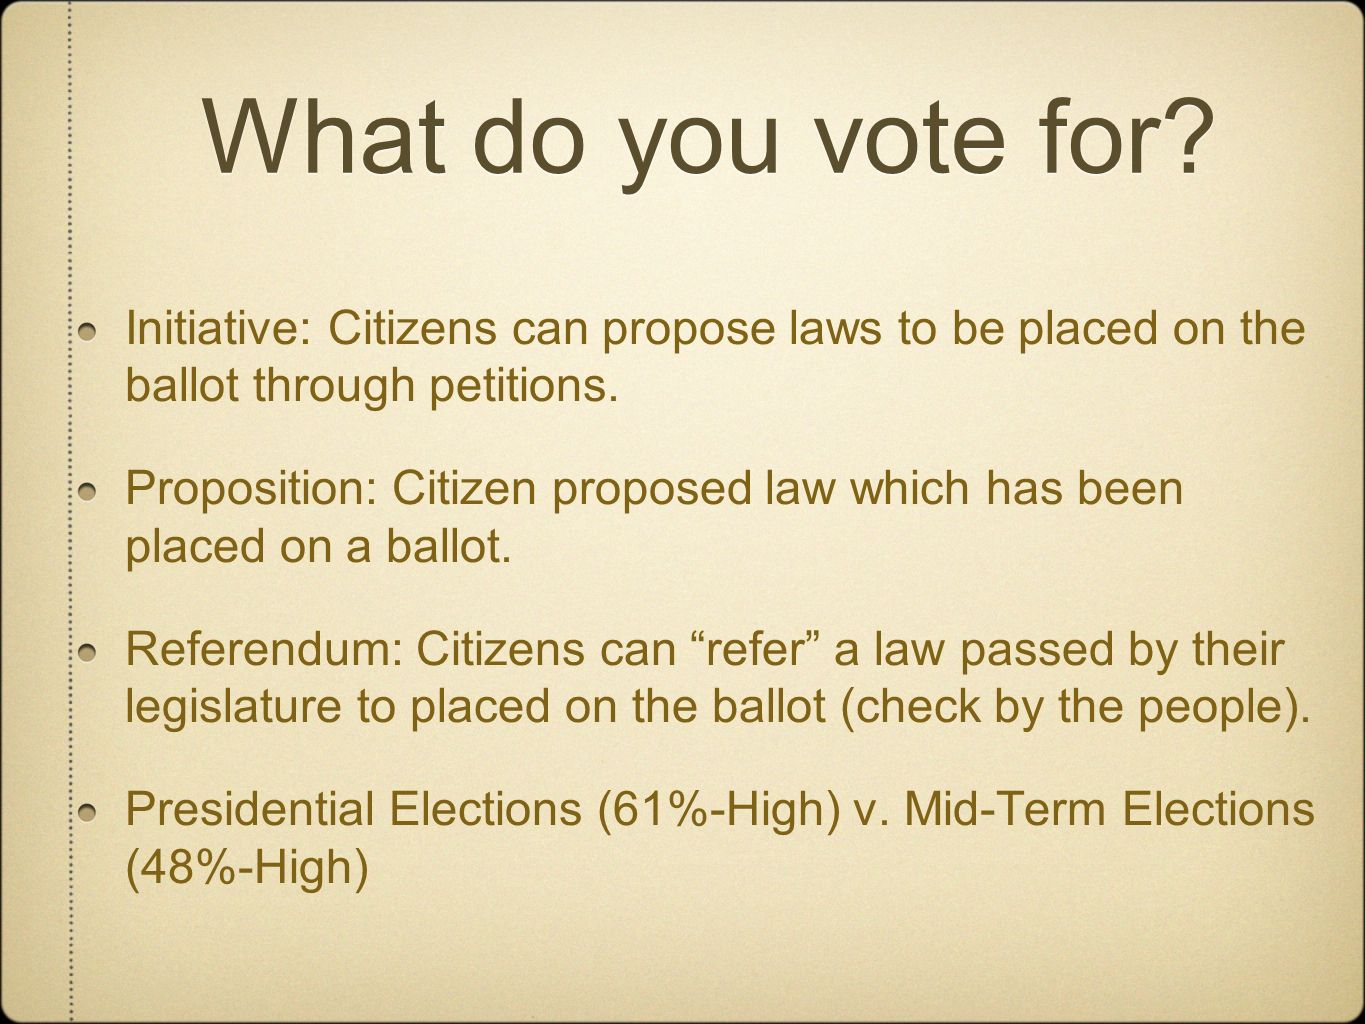 What do you vote for? Initiative: Citizens can propose laws to be placed on the ballot through petitions. Proposition: Citizen proposed law which has